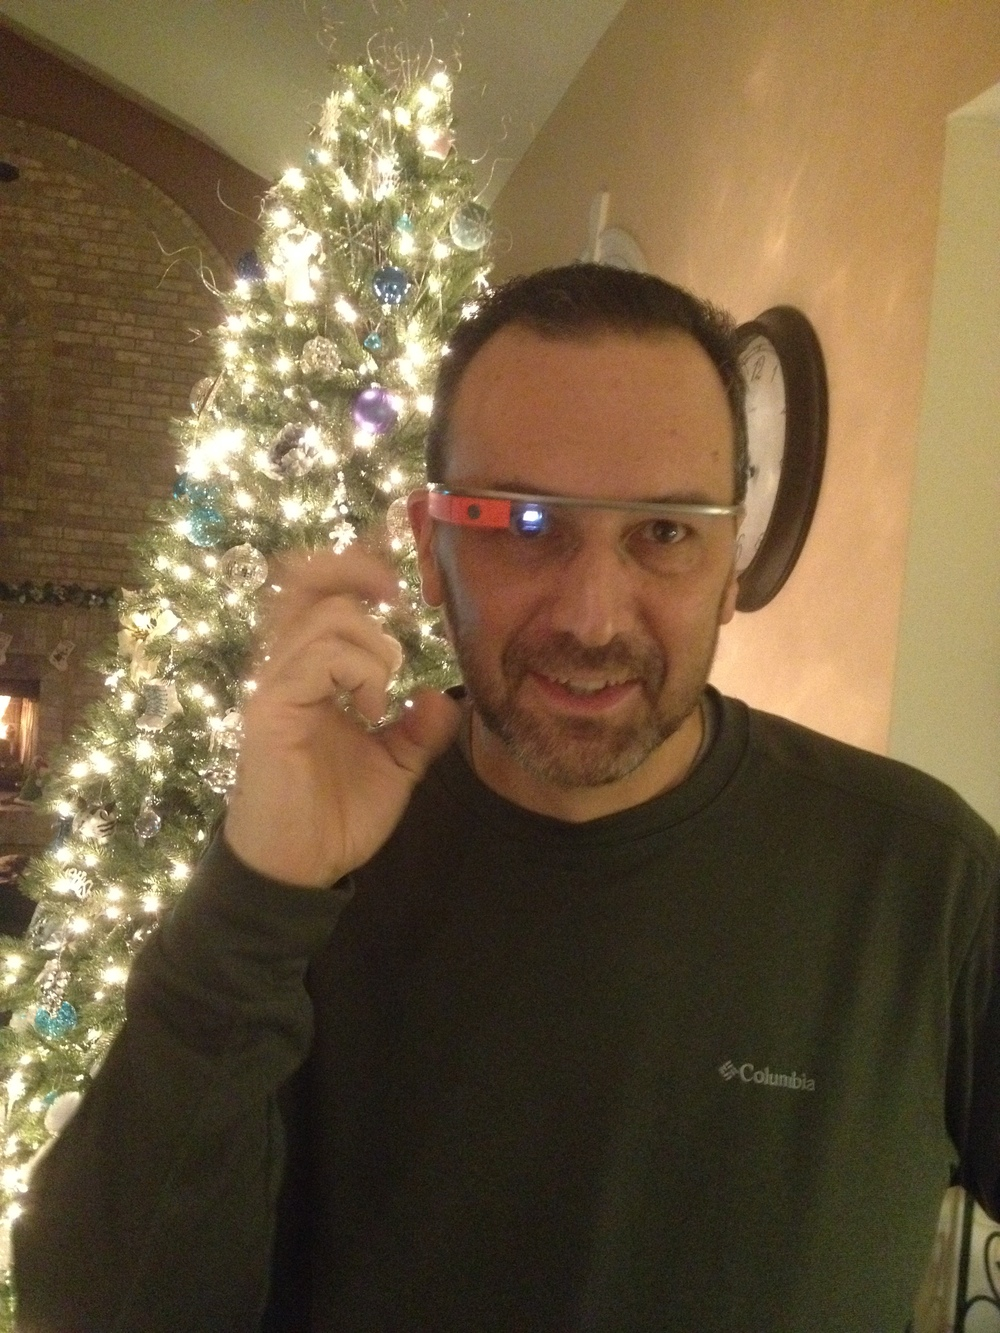 Fun with Google Glass